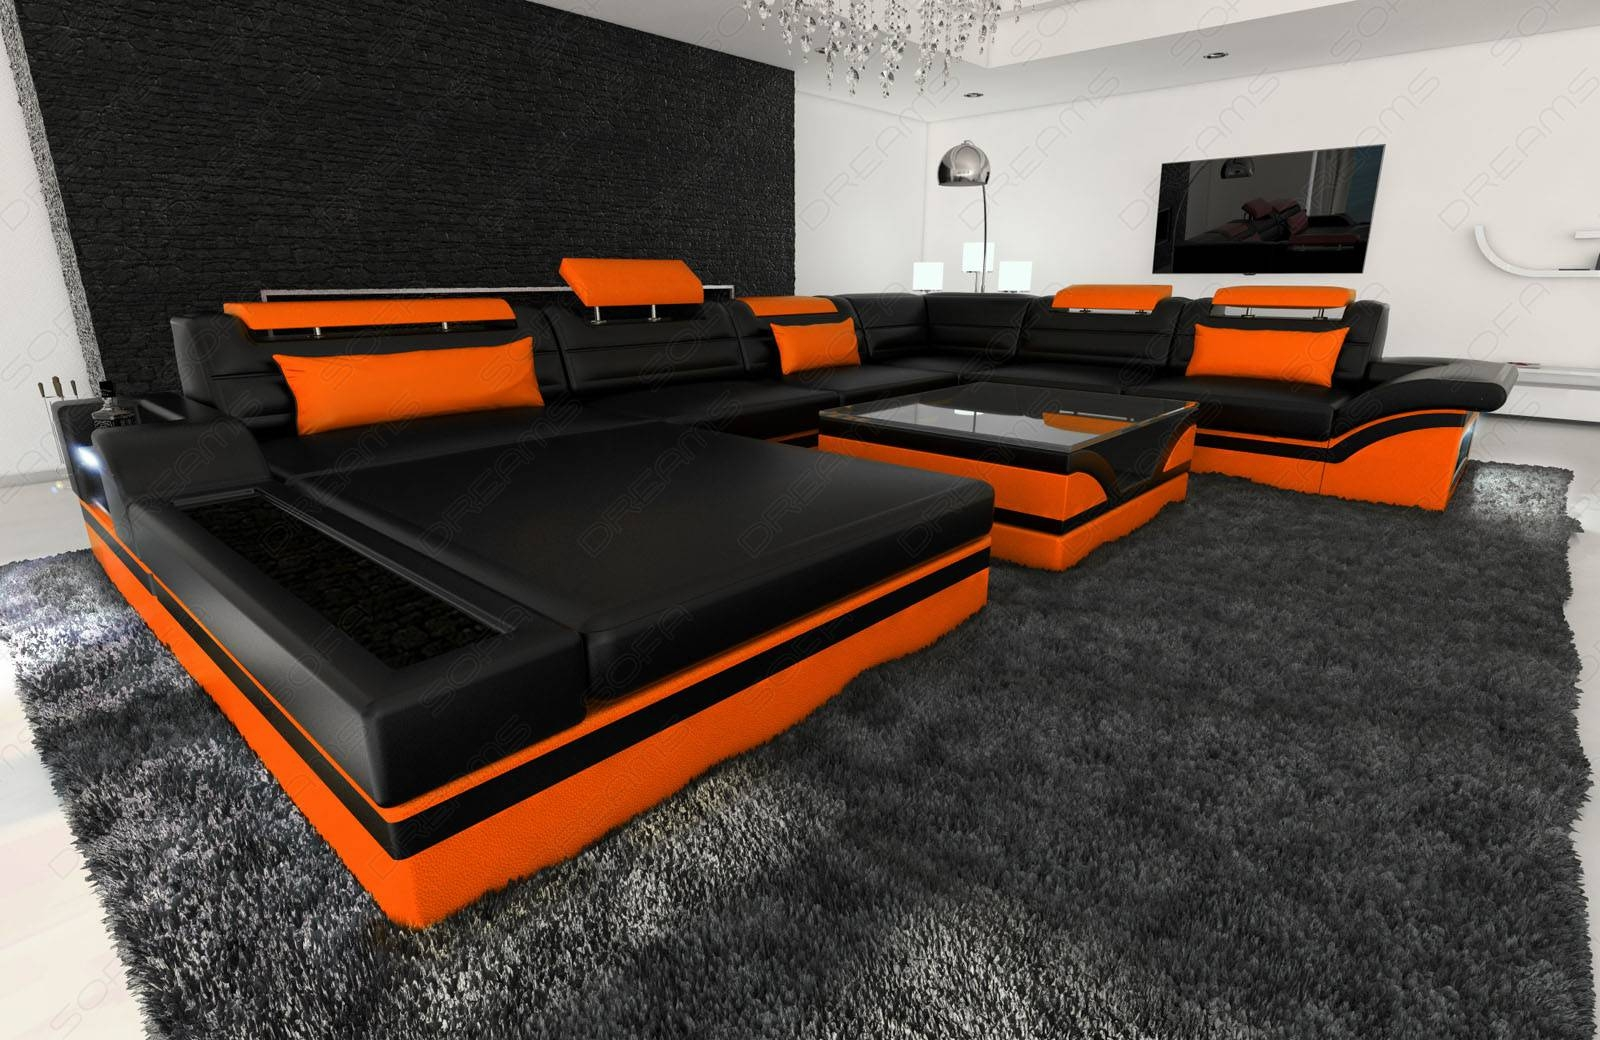 Design Sectional Sofa Mezzo Xxl With Led Lights Black Orange Throughout Orange Sectional Sofa (View 15 of 30)